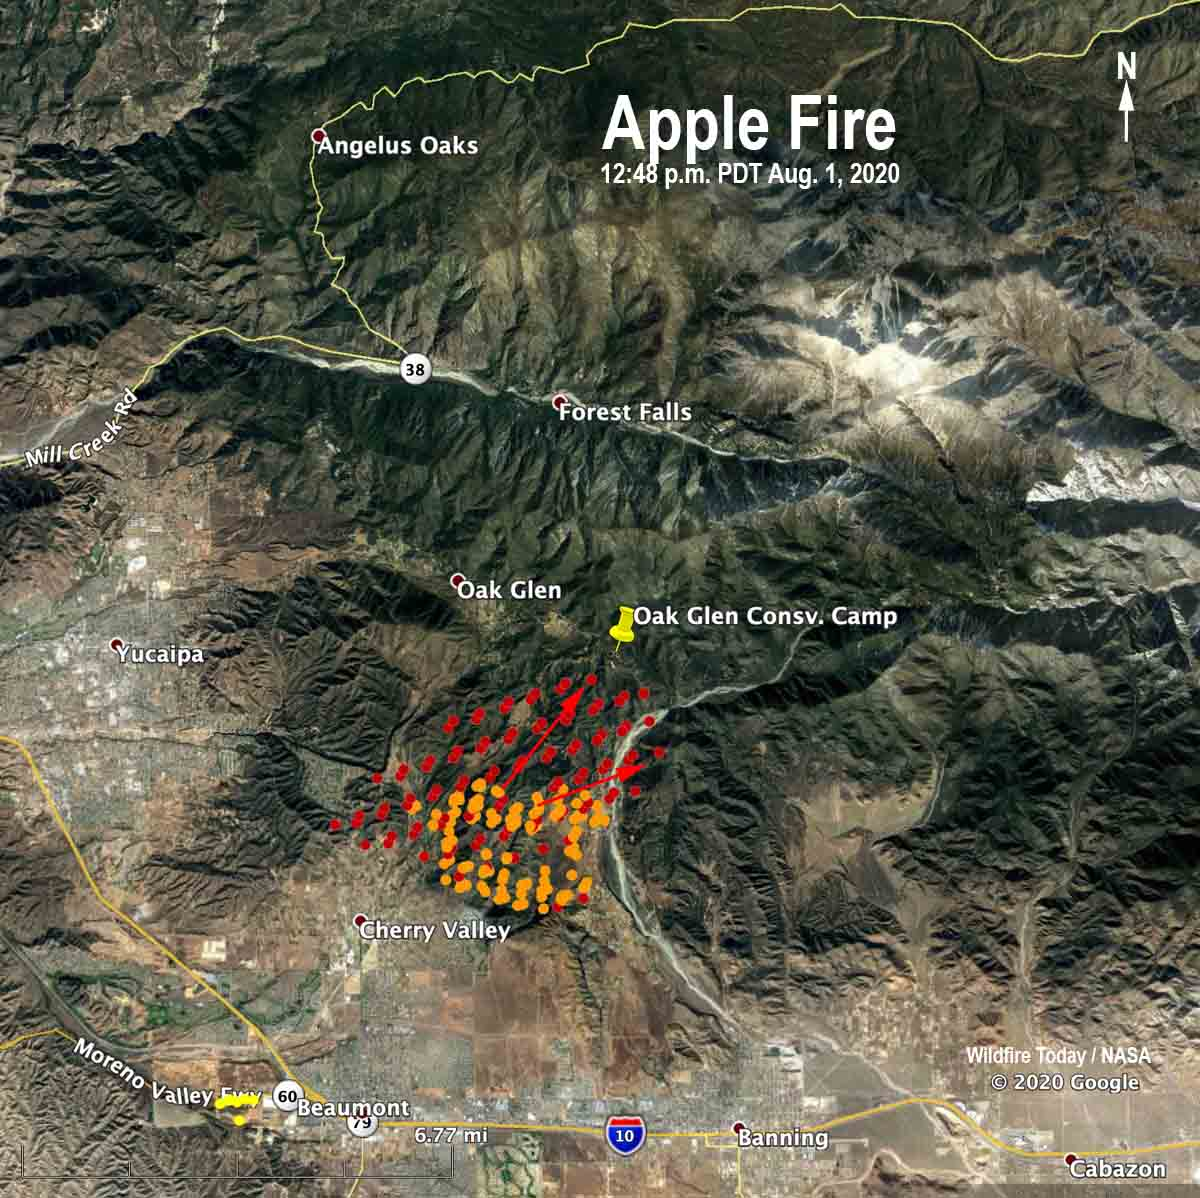 map Apple Fire Cherry Valley Beaumont California wildfire